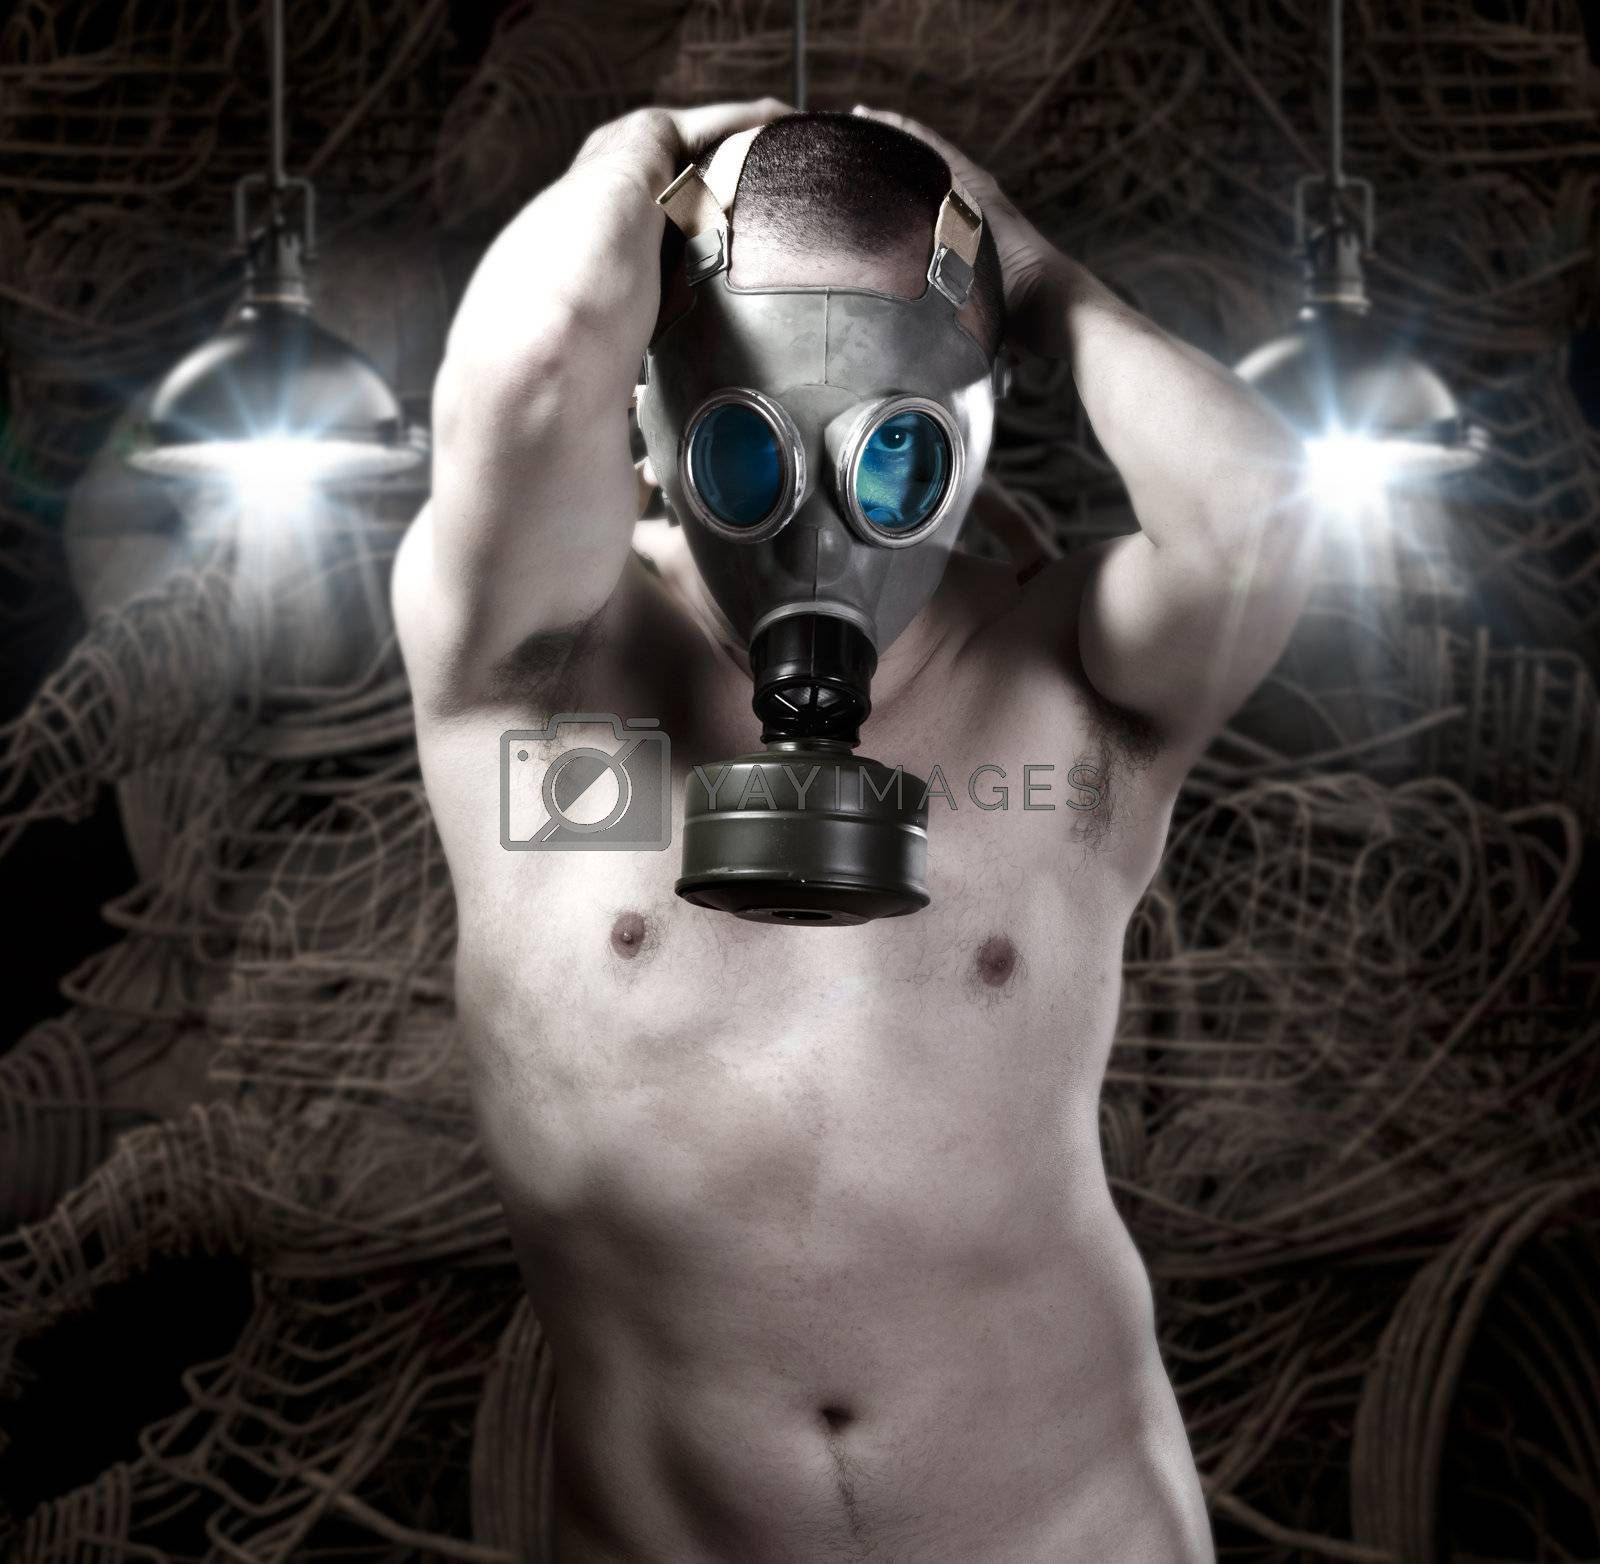 Naked Man with gas mask on background of robots and technology